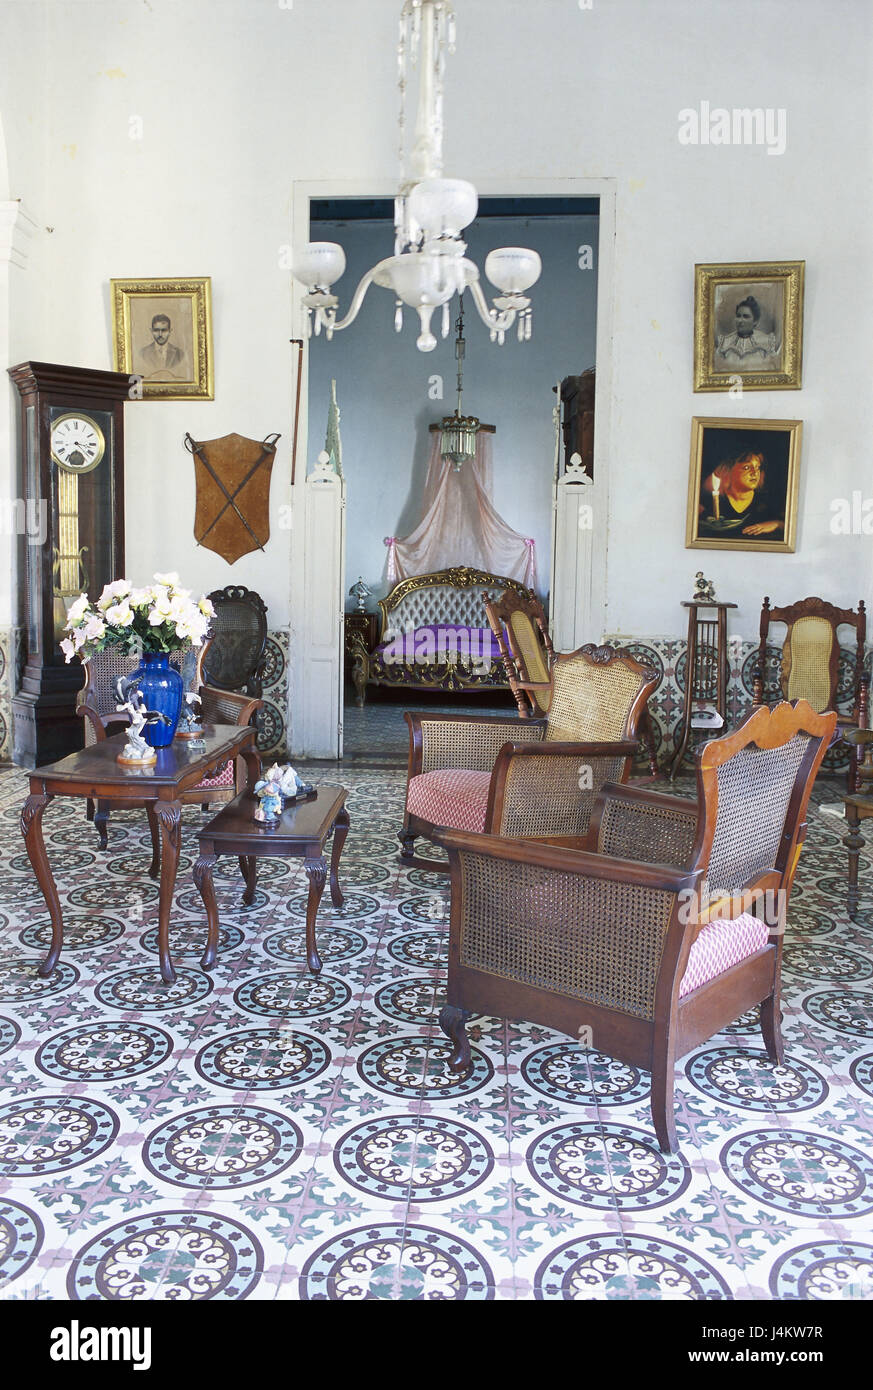 Cuba, Trinidad, Colonial House, Living Space The Caribbean, Caribbean Sea,  The Greater Antilles, Island, Island State, Building, Interior Shot, Setup,  ...